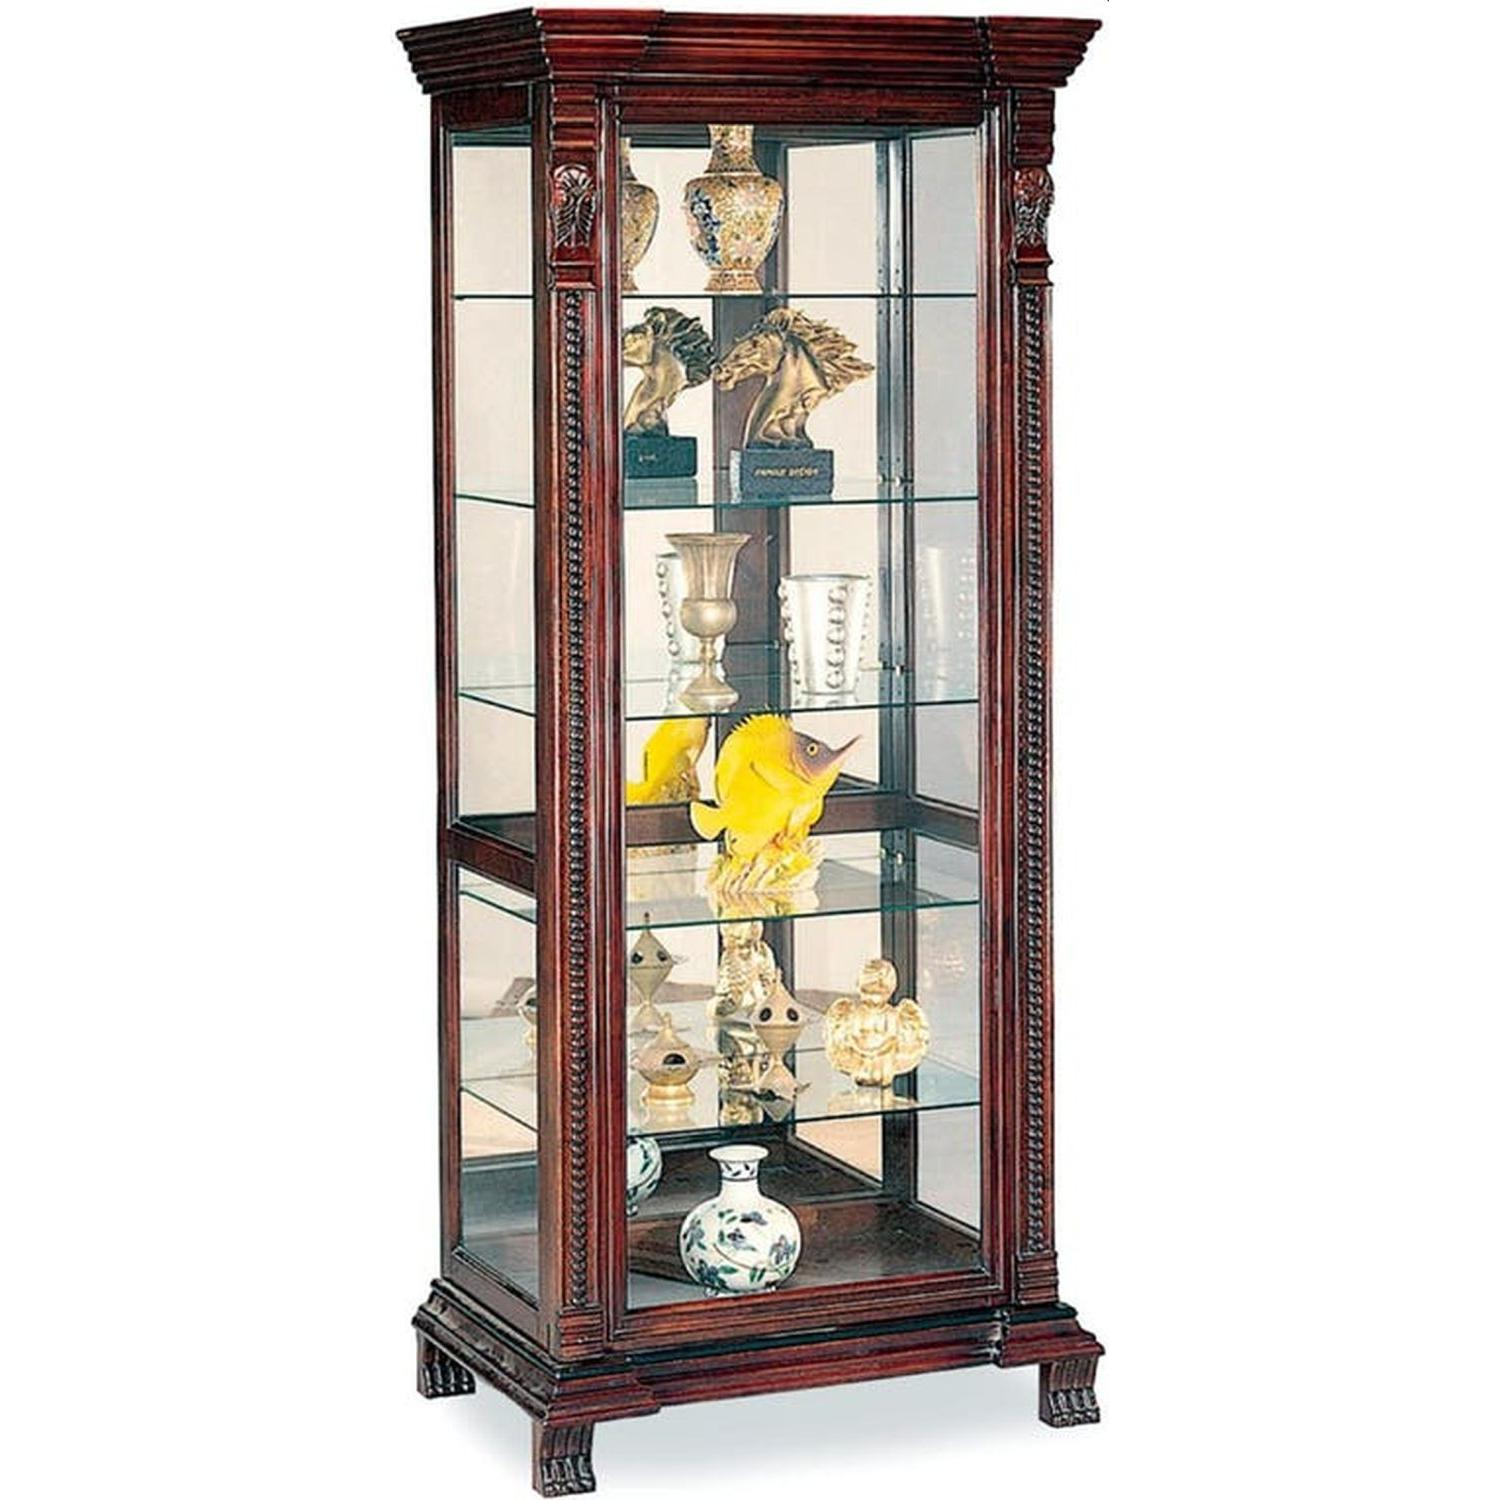 Curio Cabinet With Intricate Woodwork Carvings - image-0